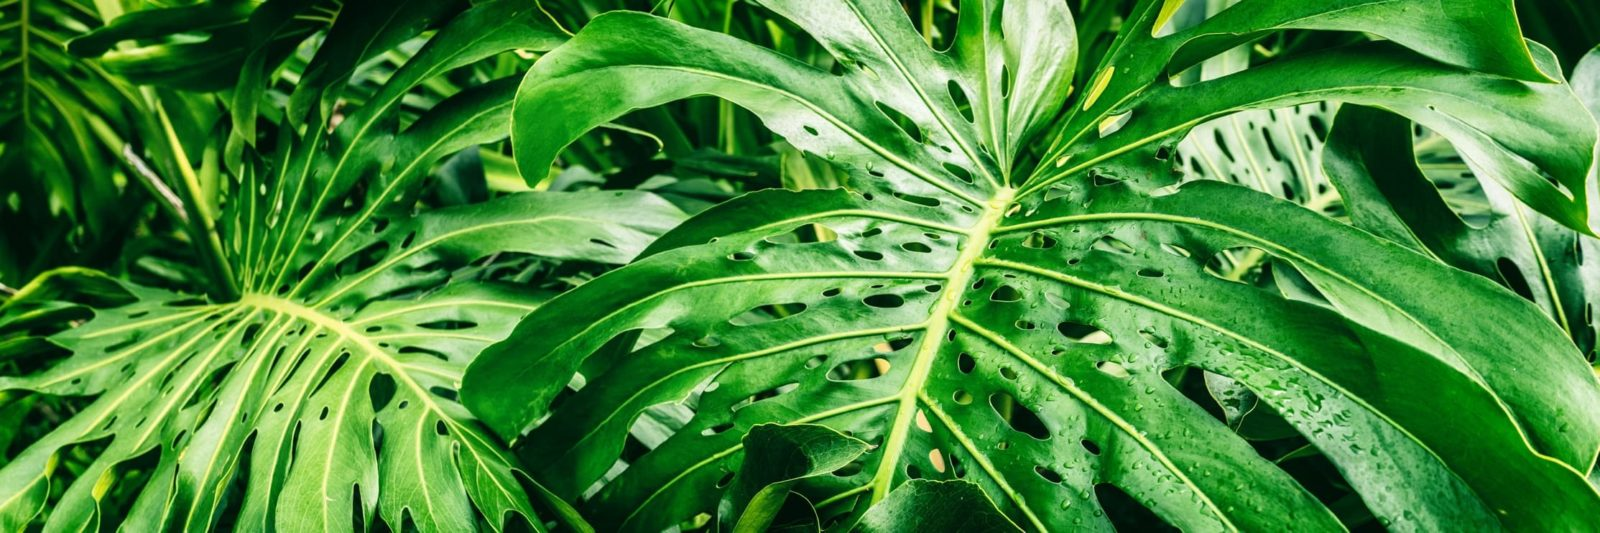 tropical green foliage of swiss cheese plant